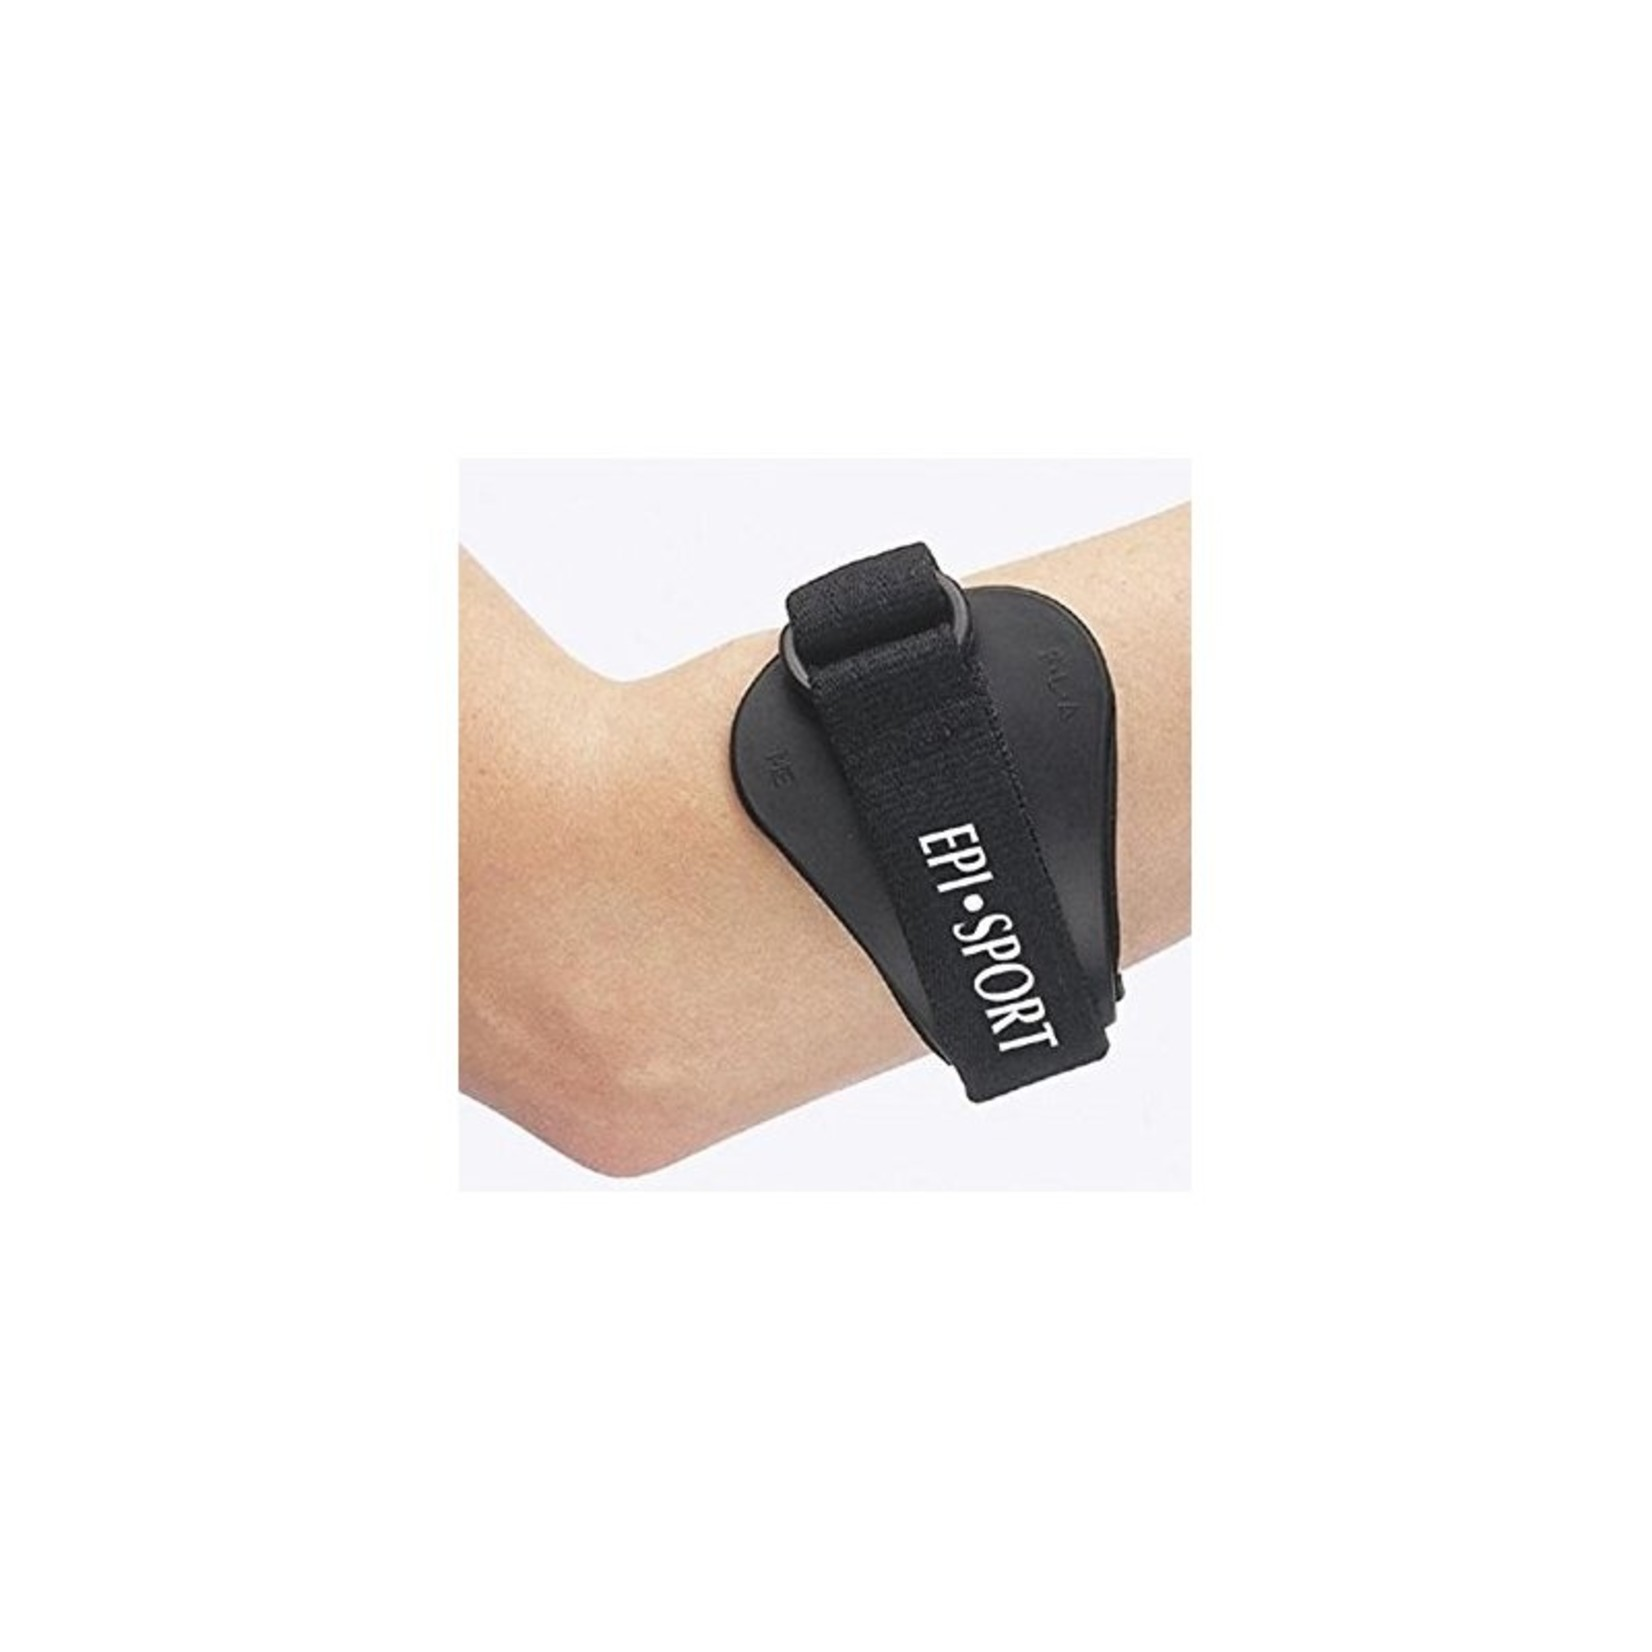 FLA Orthopedics EPISPORT EPICONDYLITIS CLASP BLACK